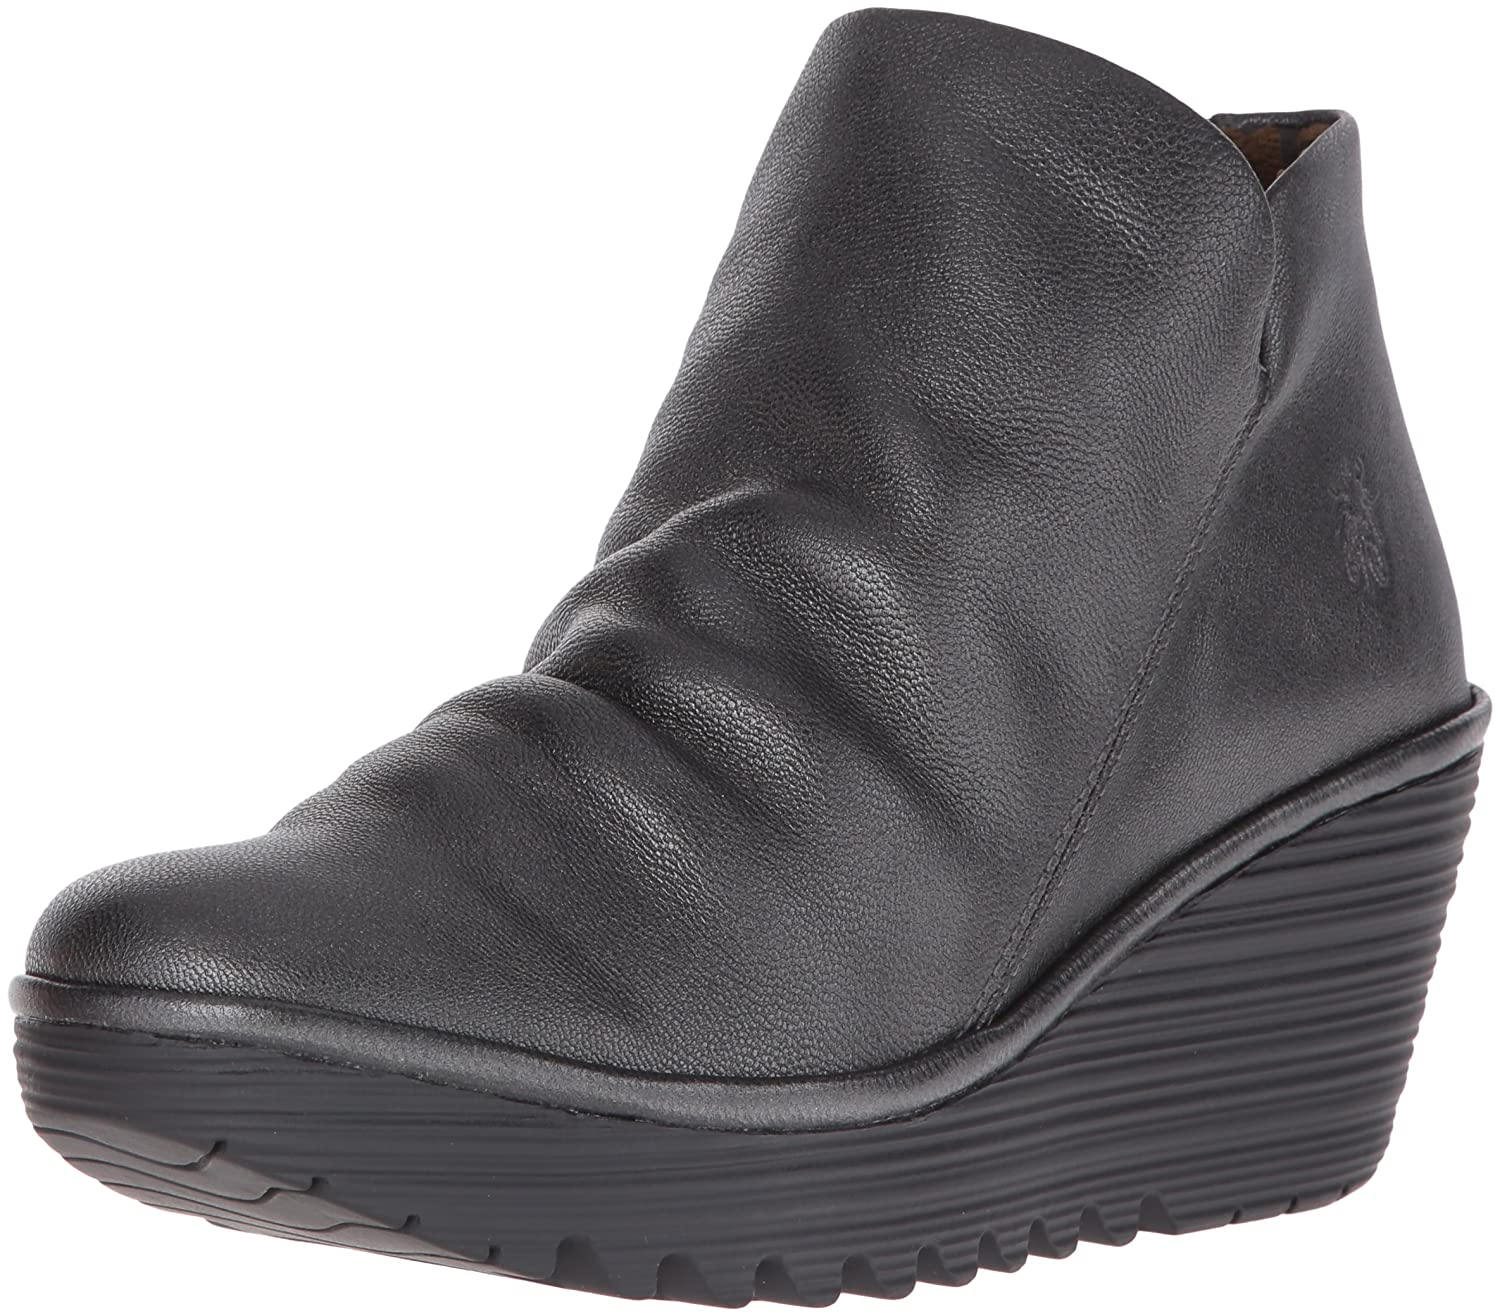 FLY London Women's Yip Boot B00UOXSU28 40 M EU / 9 B(M) US|Graphite Borg